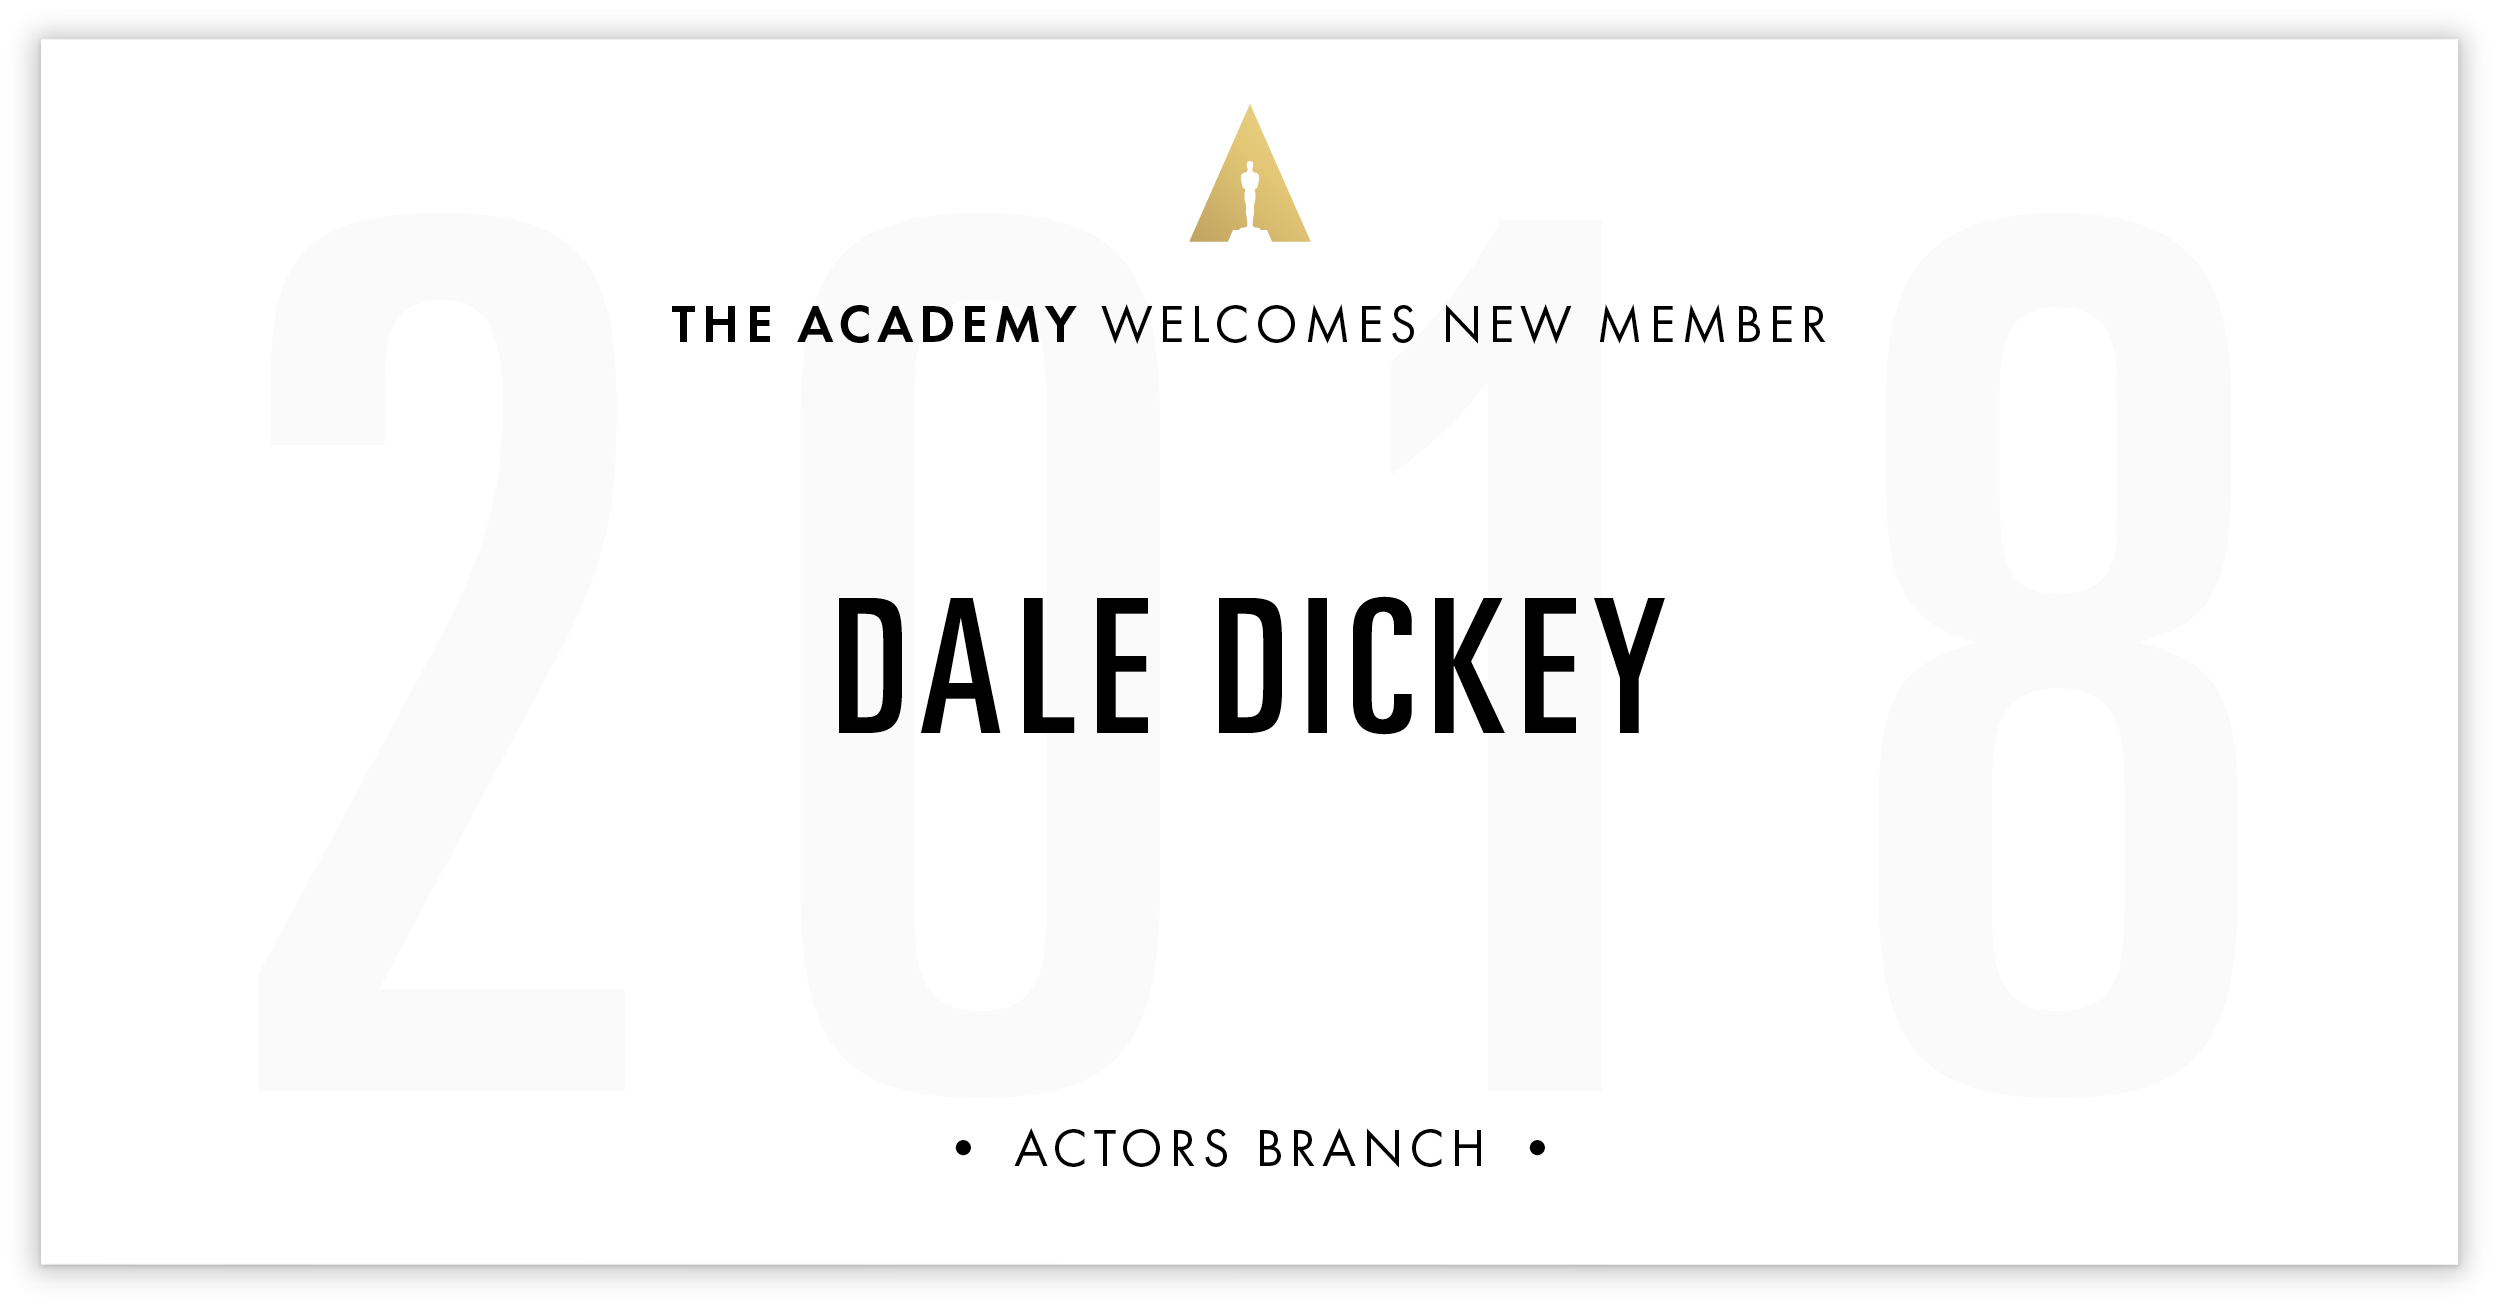 Dale Dickey is invited!